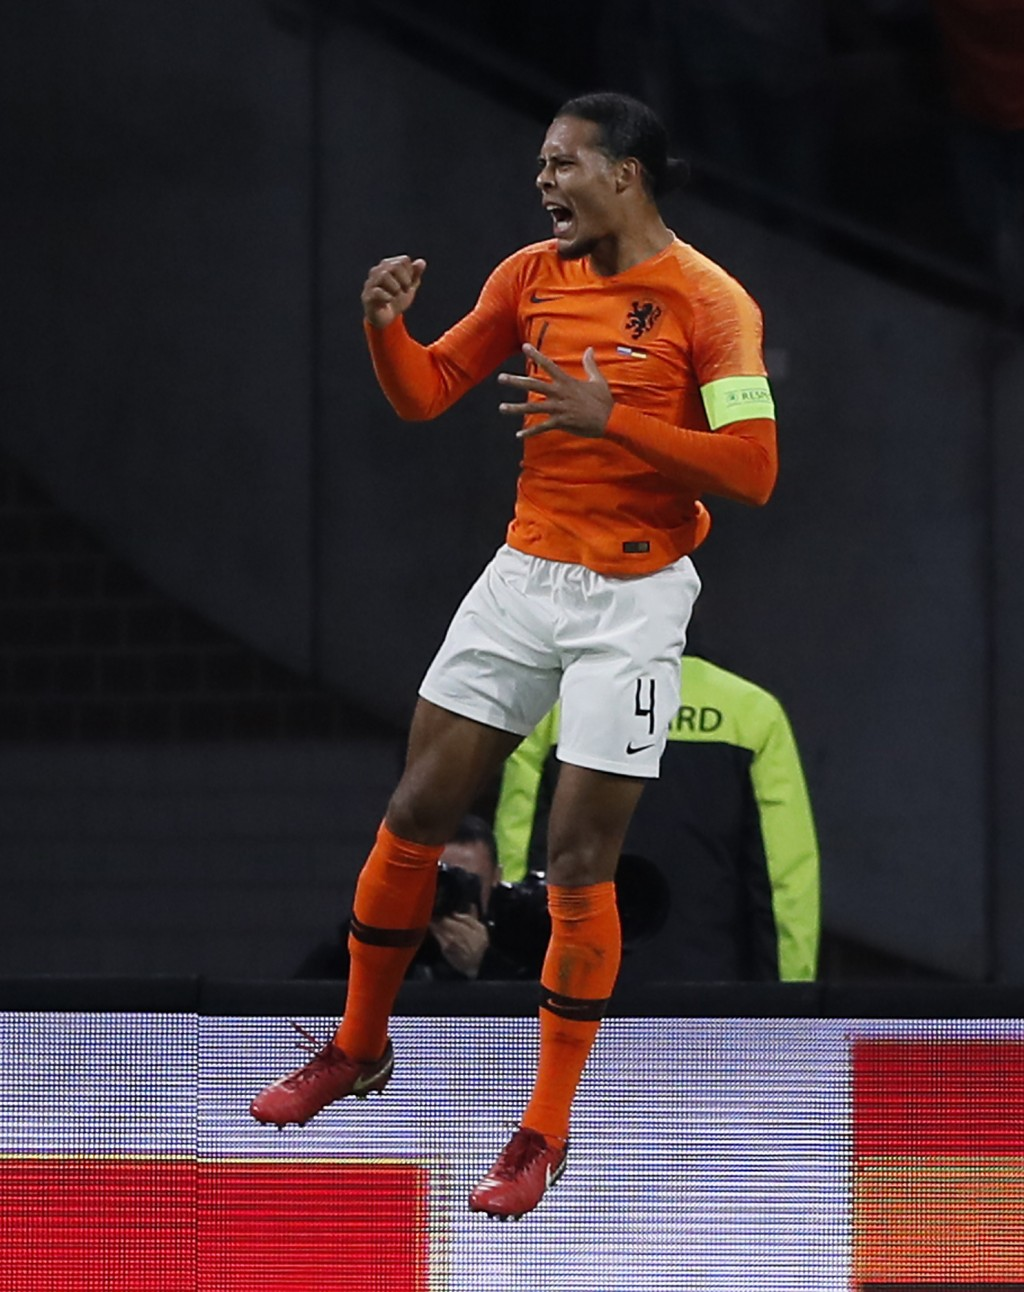 Netherland's Virgil Van Dijk celebrates after scoring the opening goal during the UEFA Nations League soccer match between The Netherlands and Germany